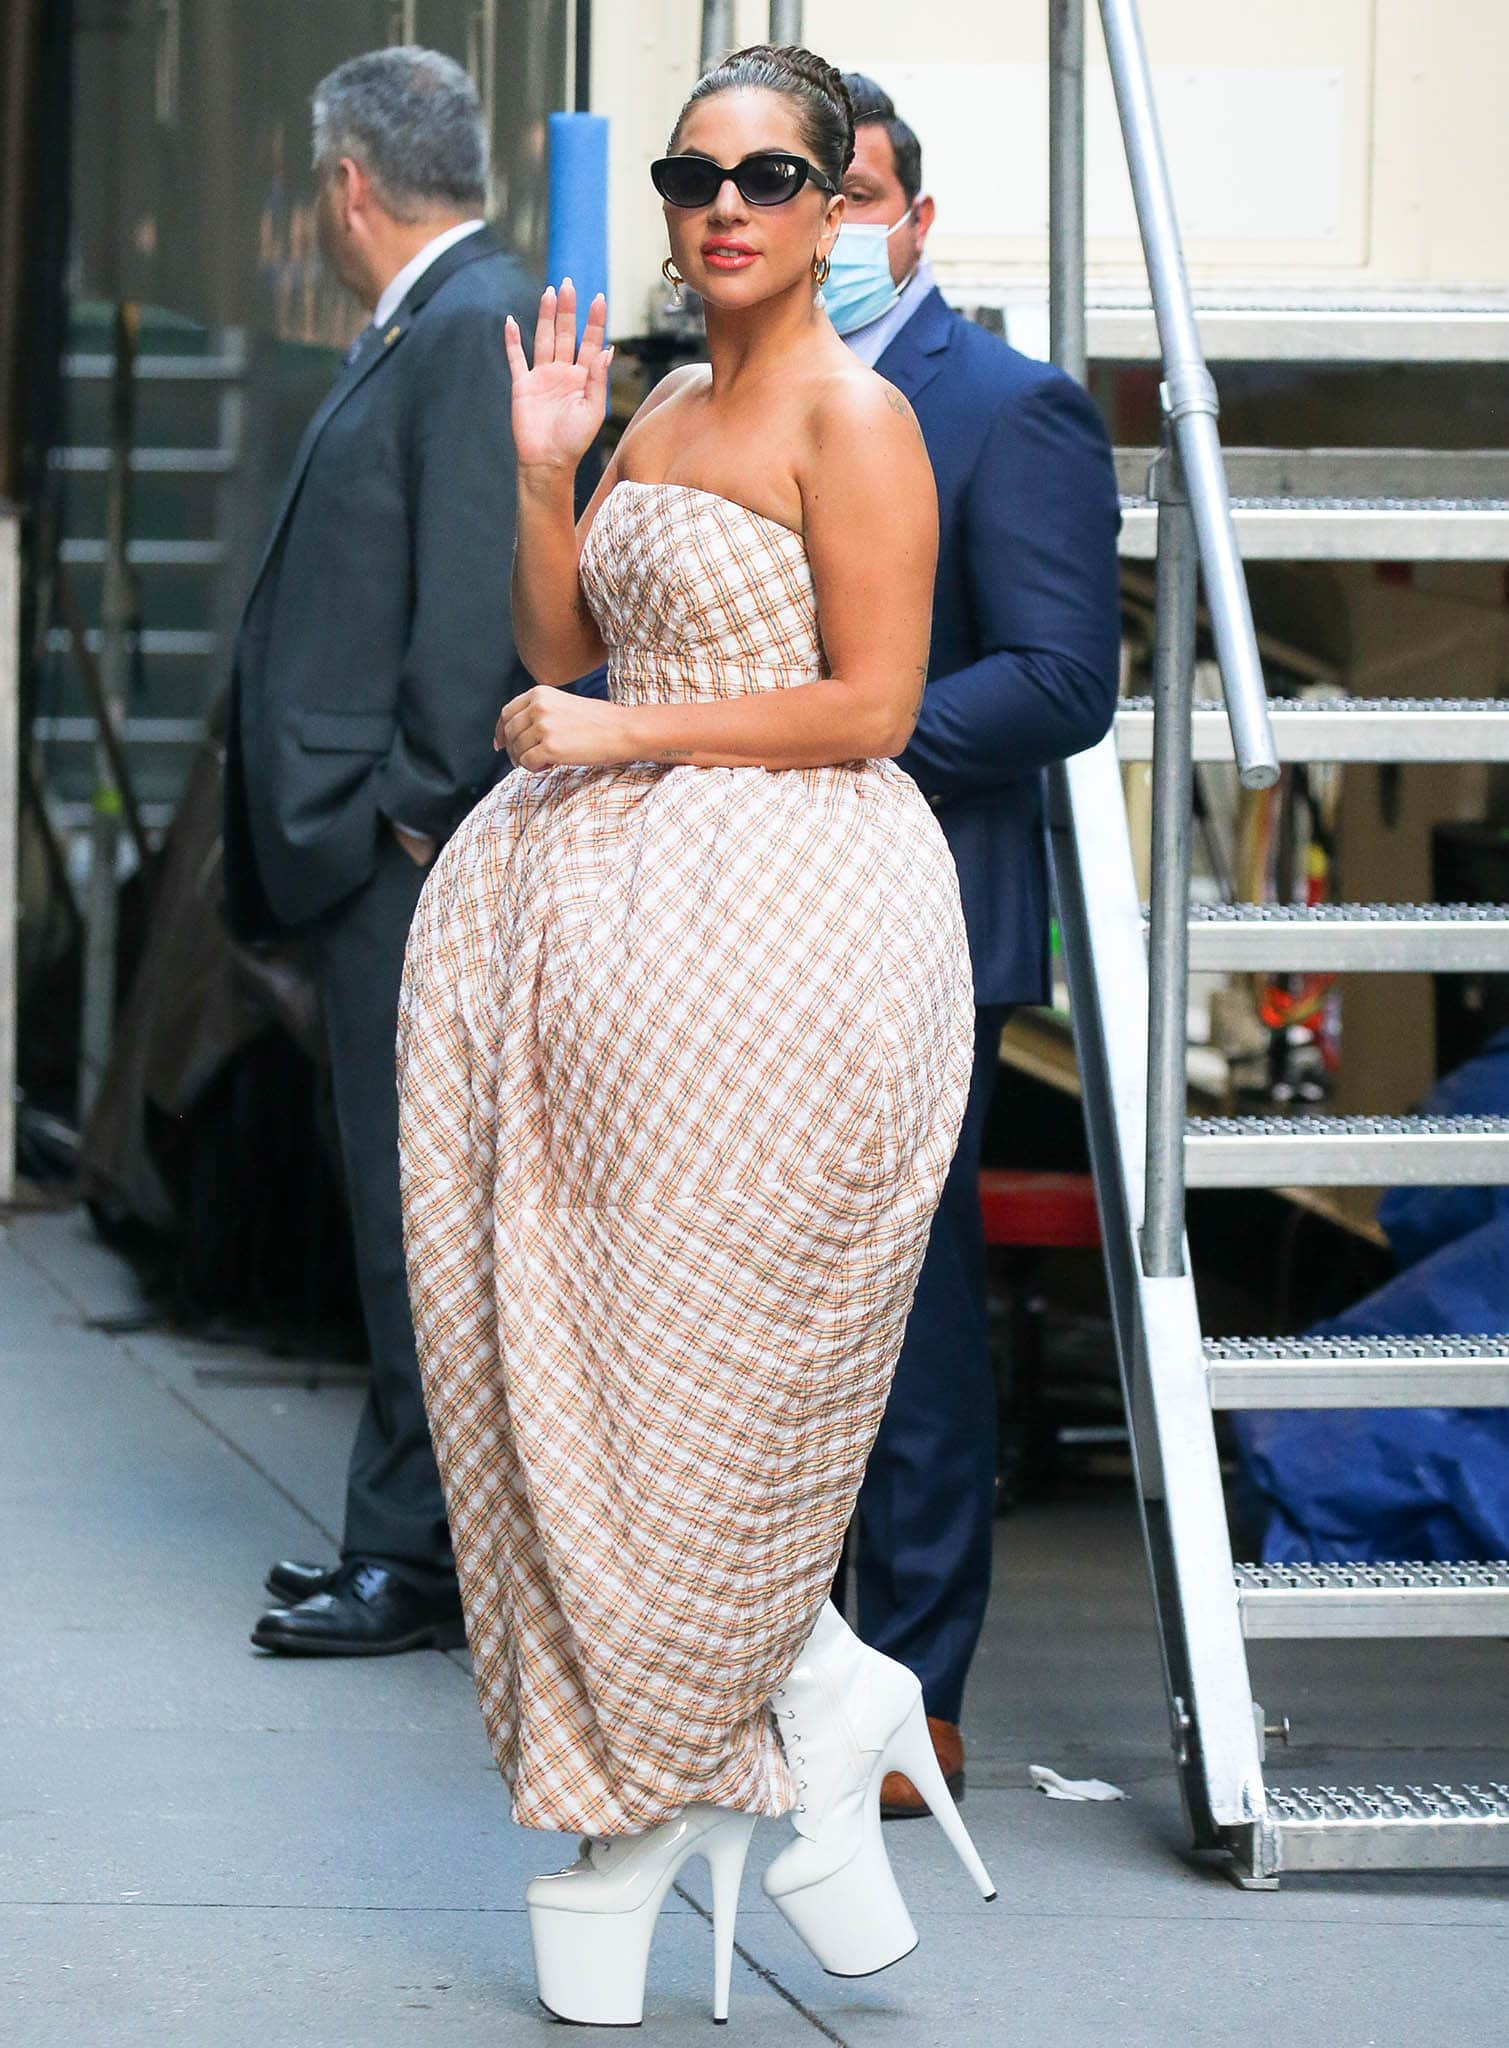 Lady Gaga arriving at Radio City Music Hall for One Last Time concert with Tony Bennett on August 5, 2021